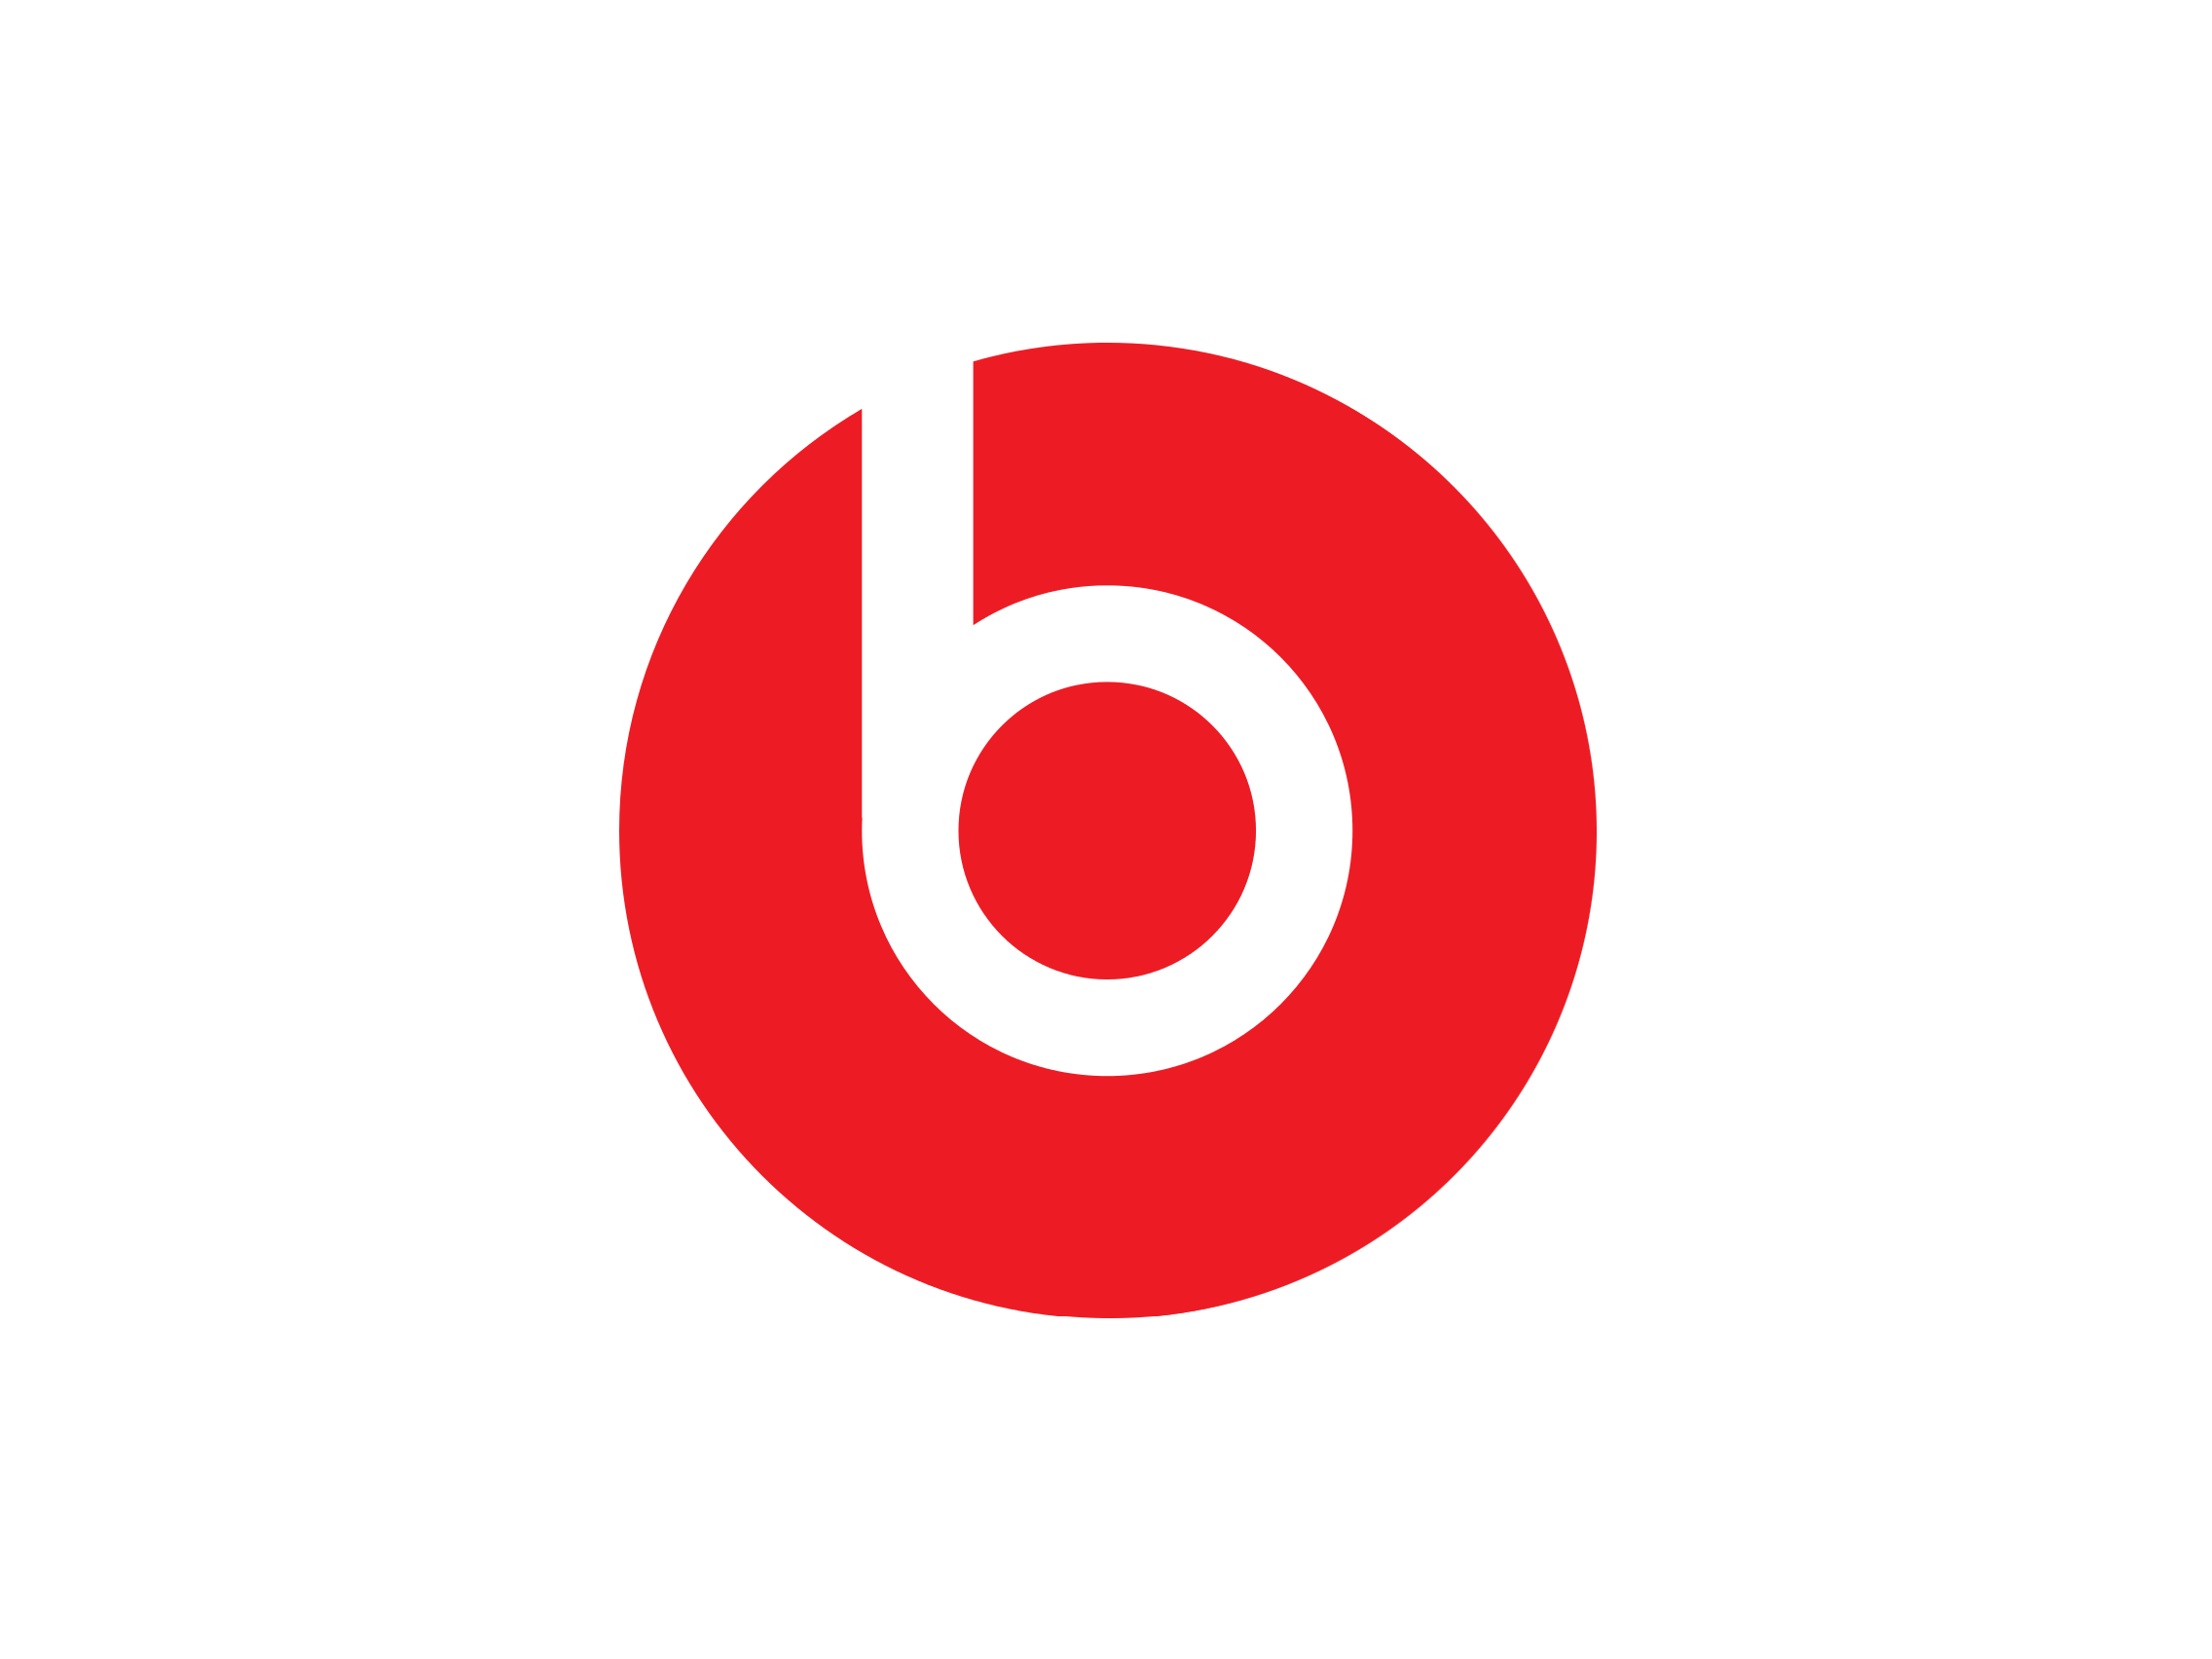 Bose Audio >> Beats logo | Logok